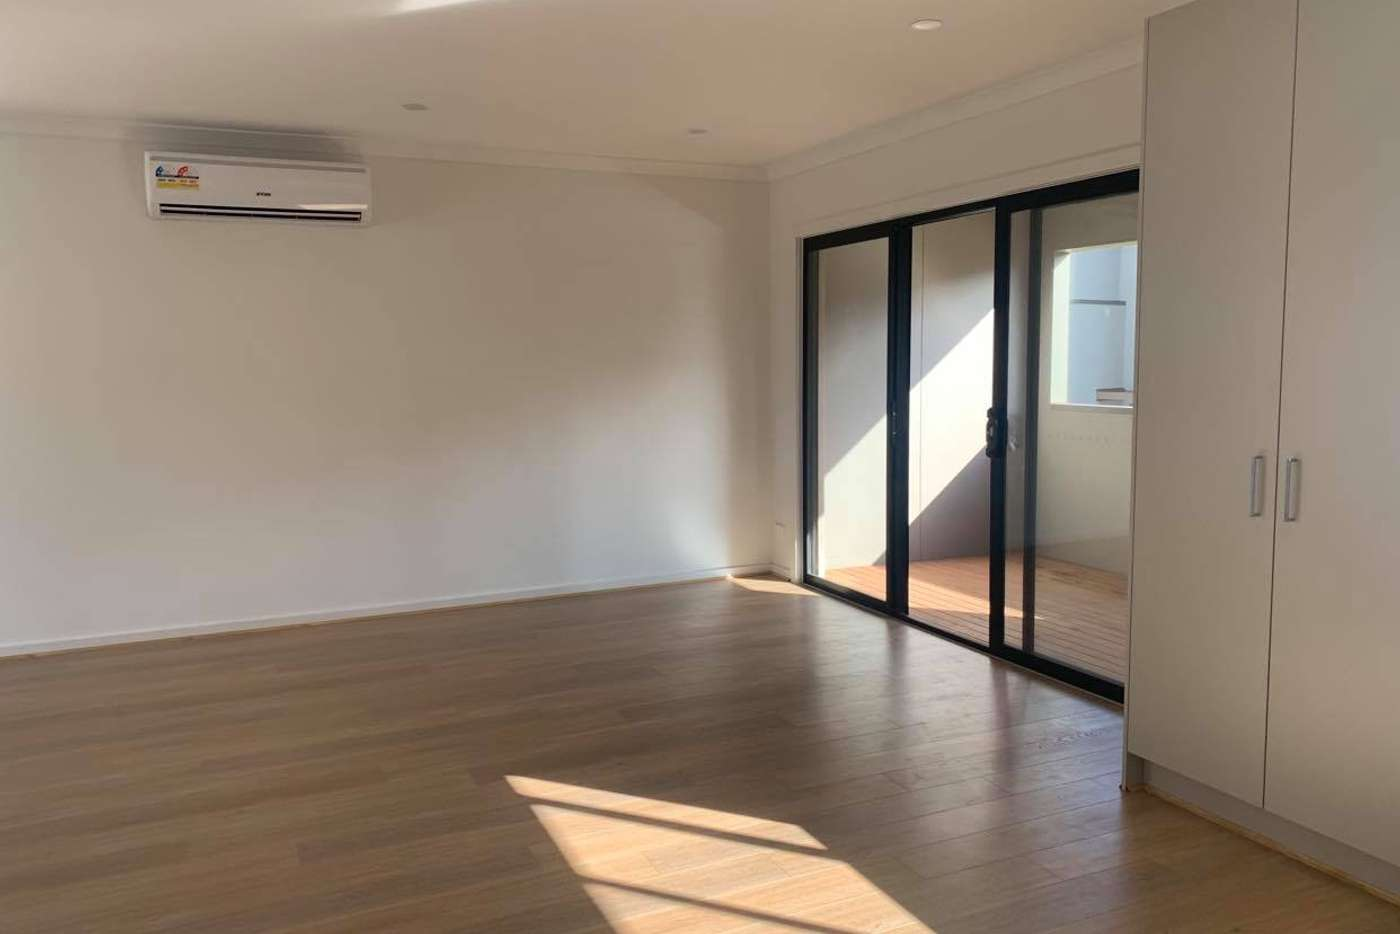 Sixth view of Homely townhouse listing, 57/27 Turva Avenue, Tarneit VIC 3029